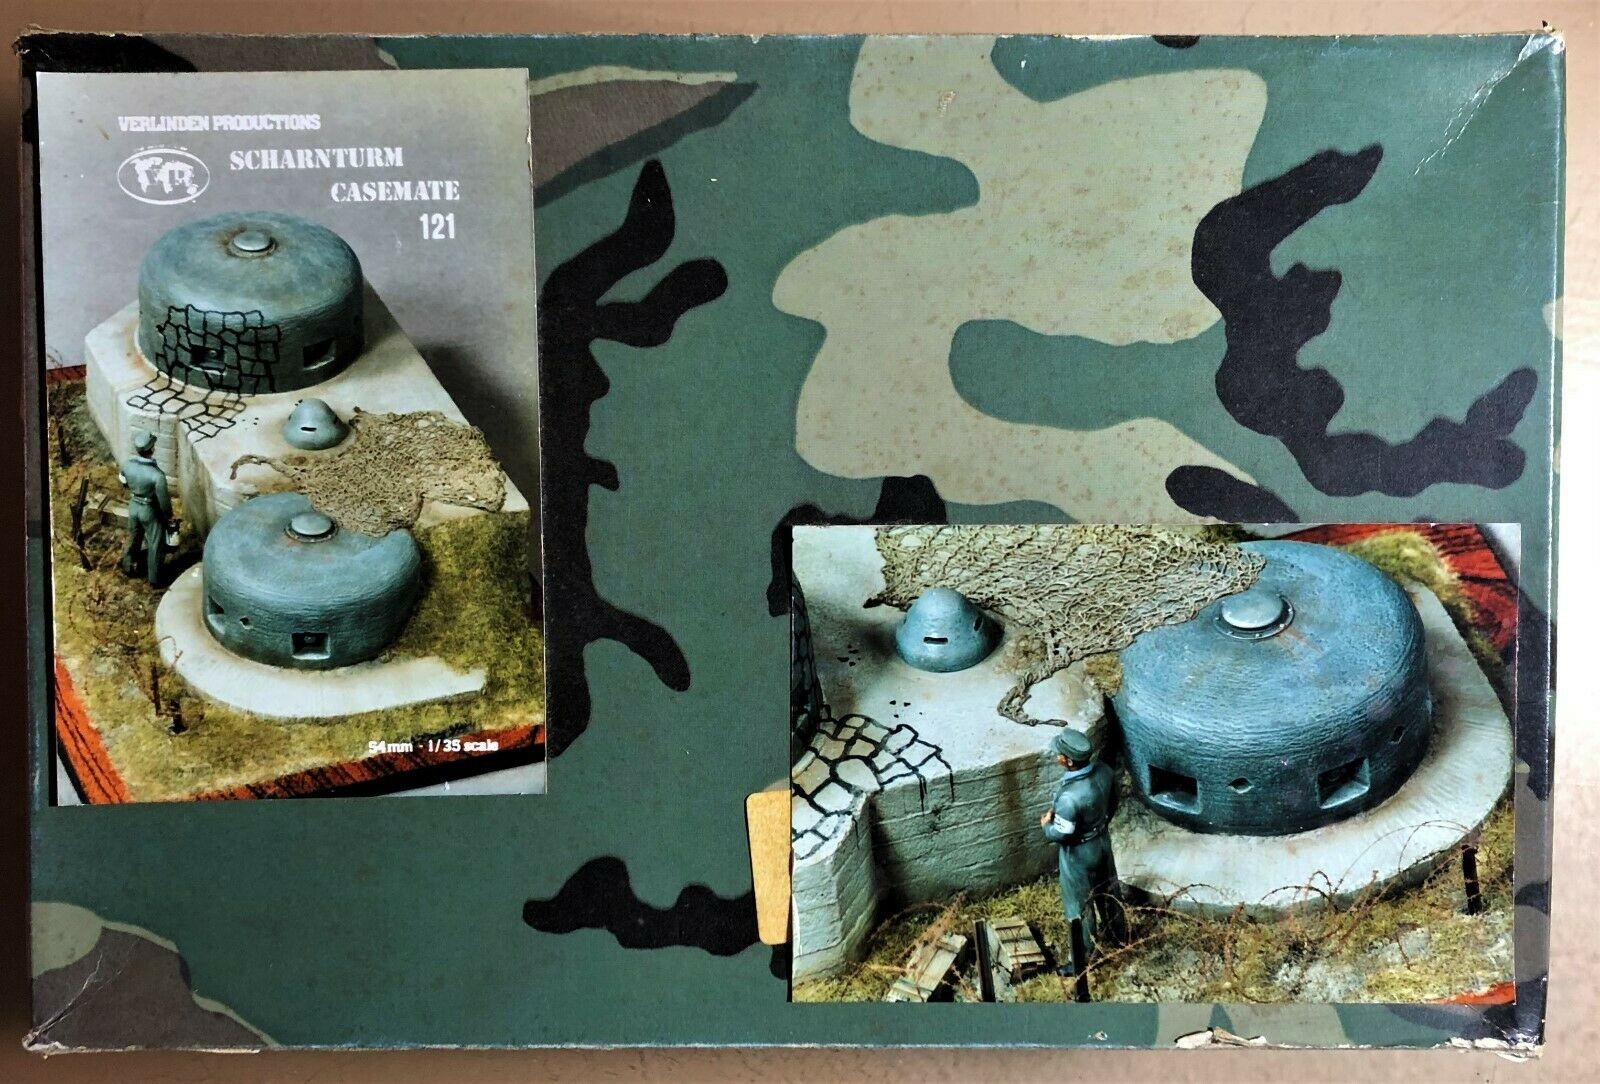 VERLINDEN 121 - SCHARNTURM CASEMATE - 1/35 CERAMIC KIT